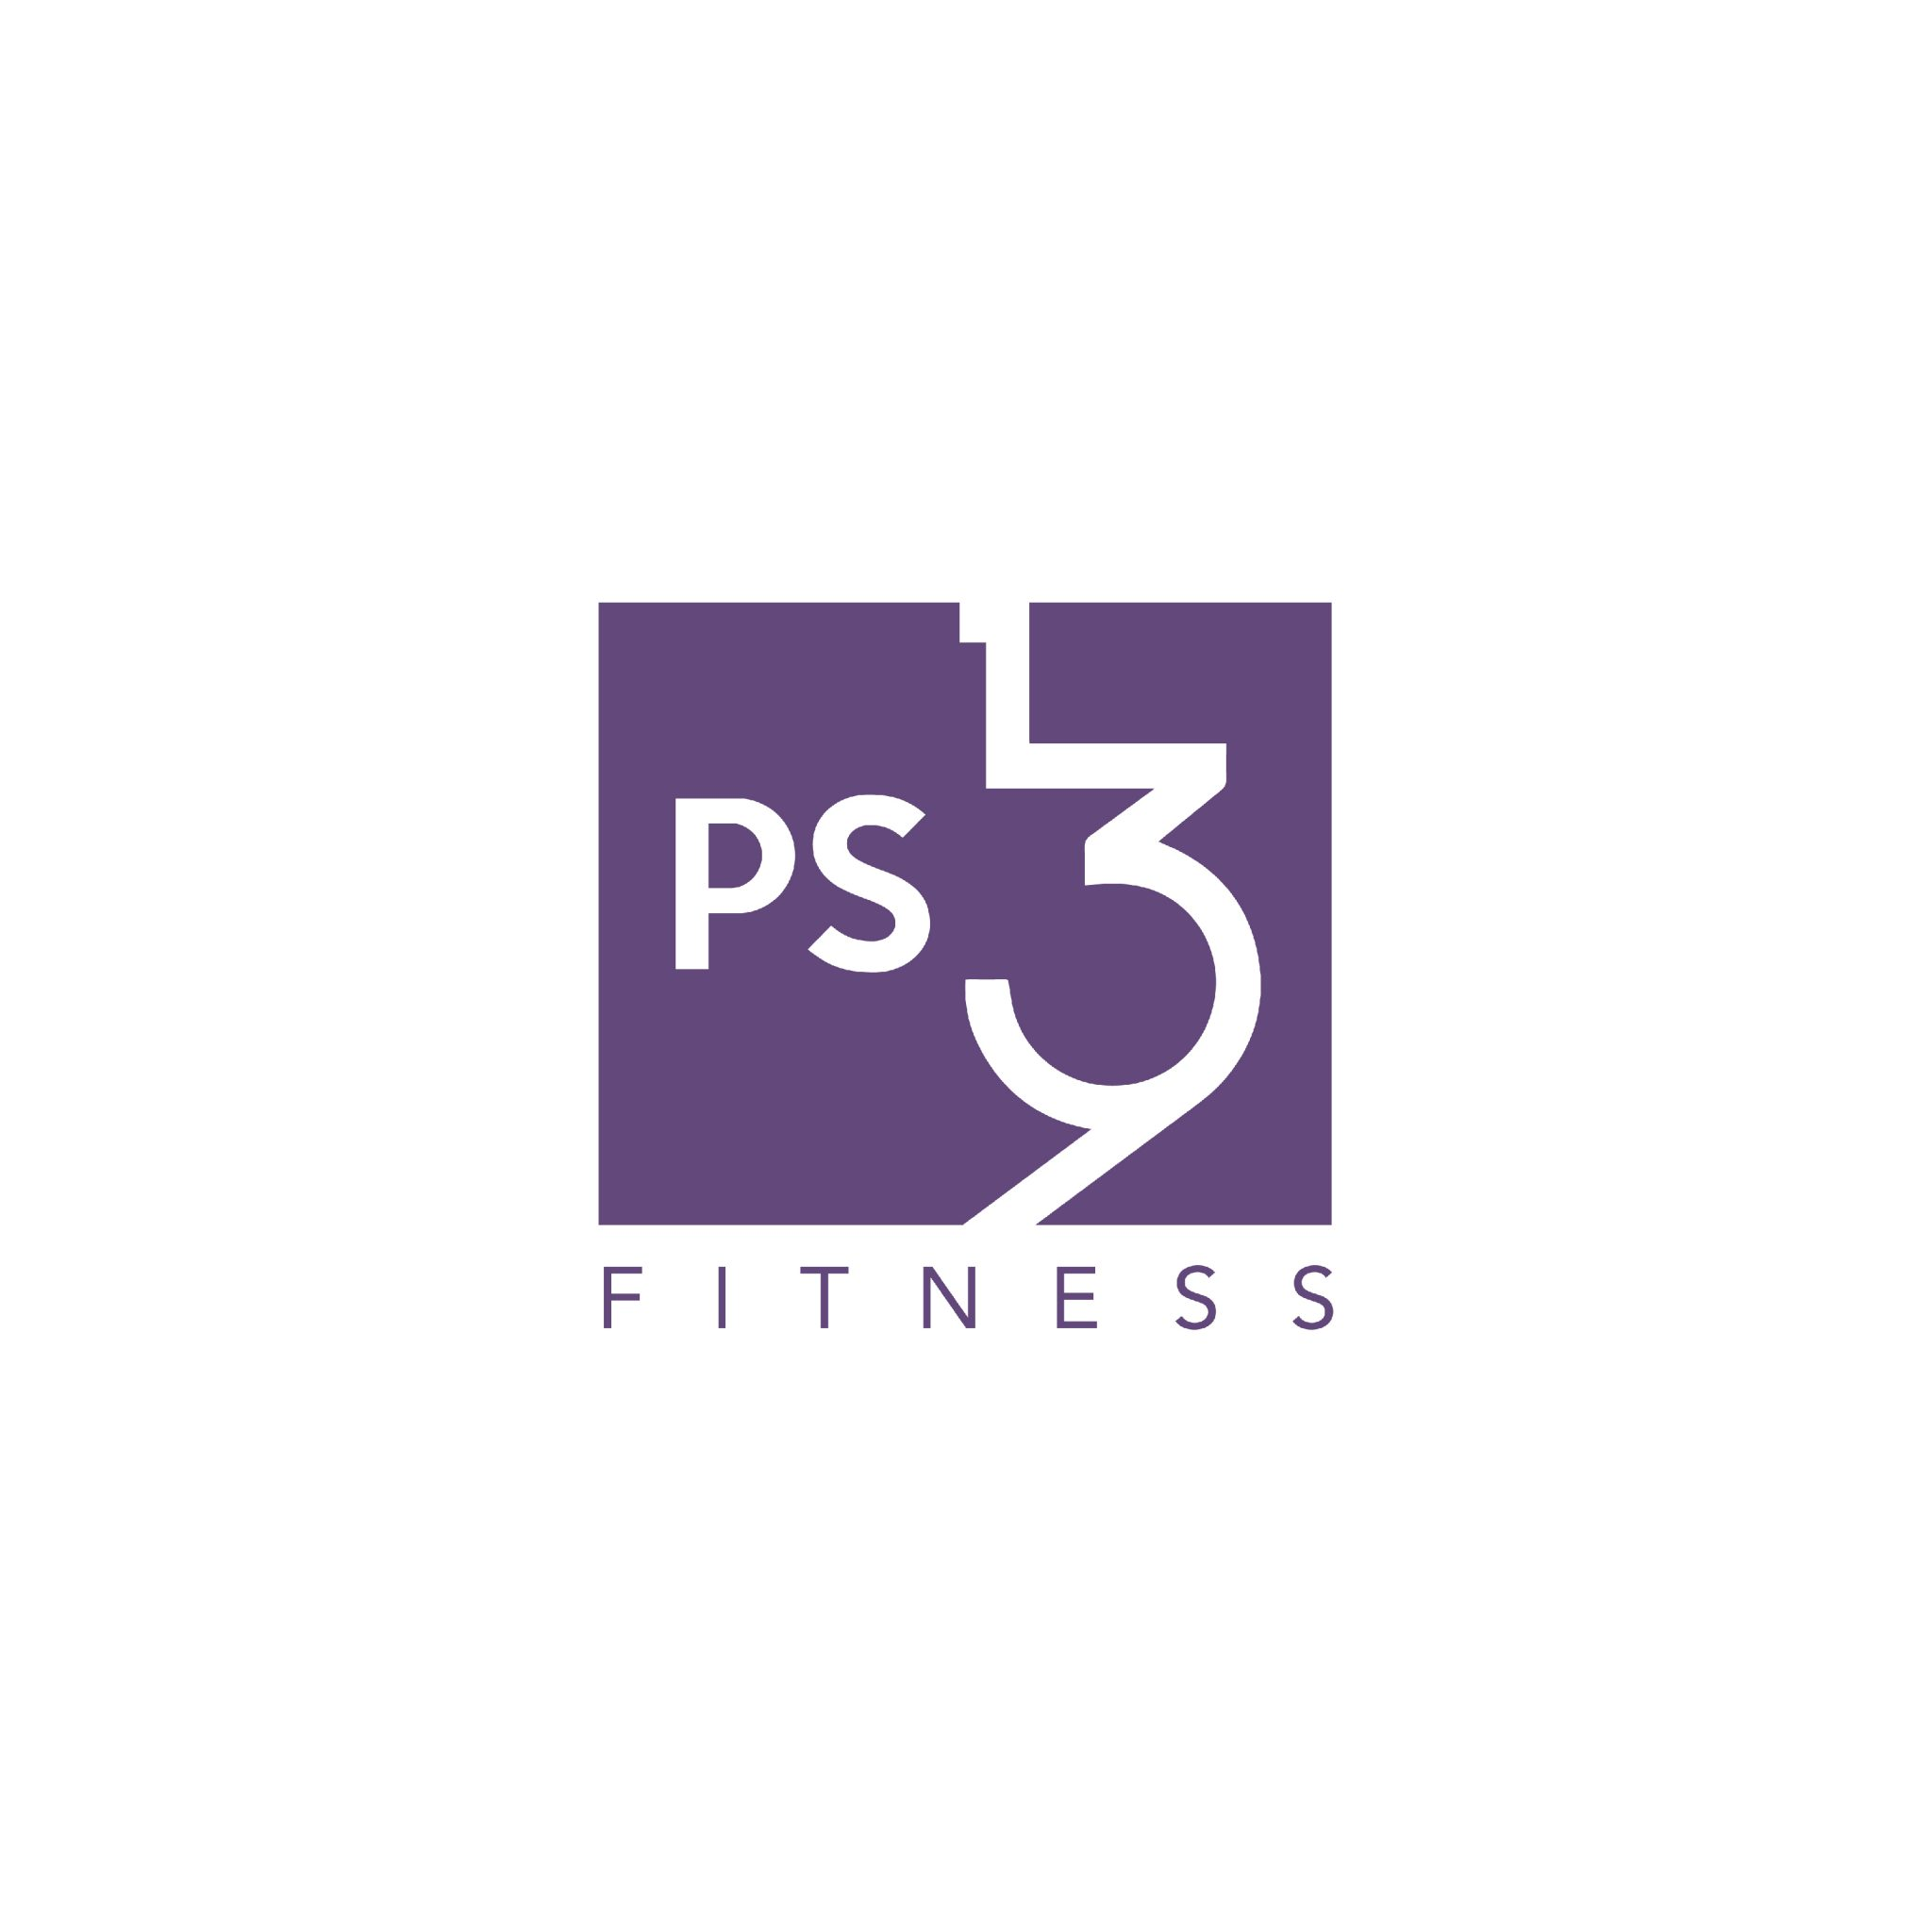 PS 139 Fitness